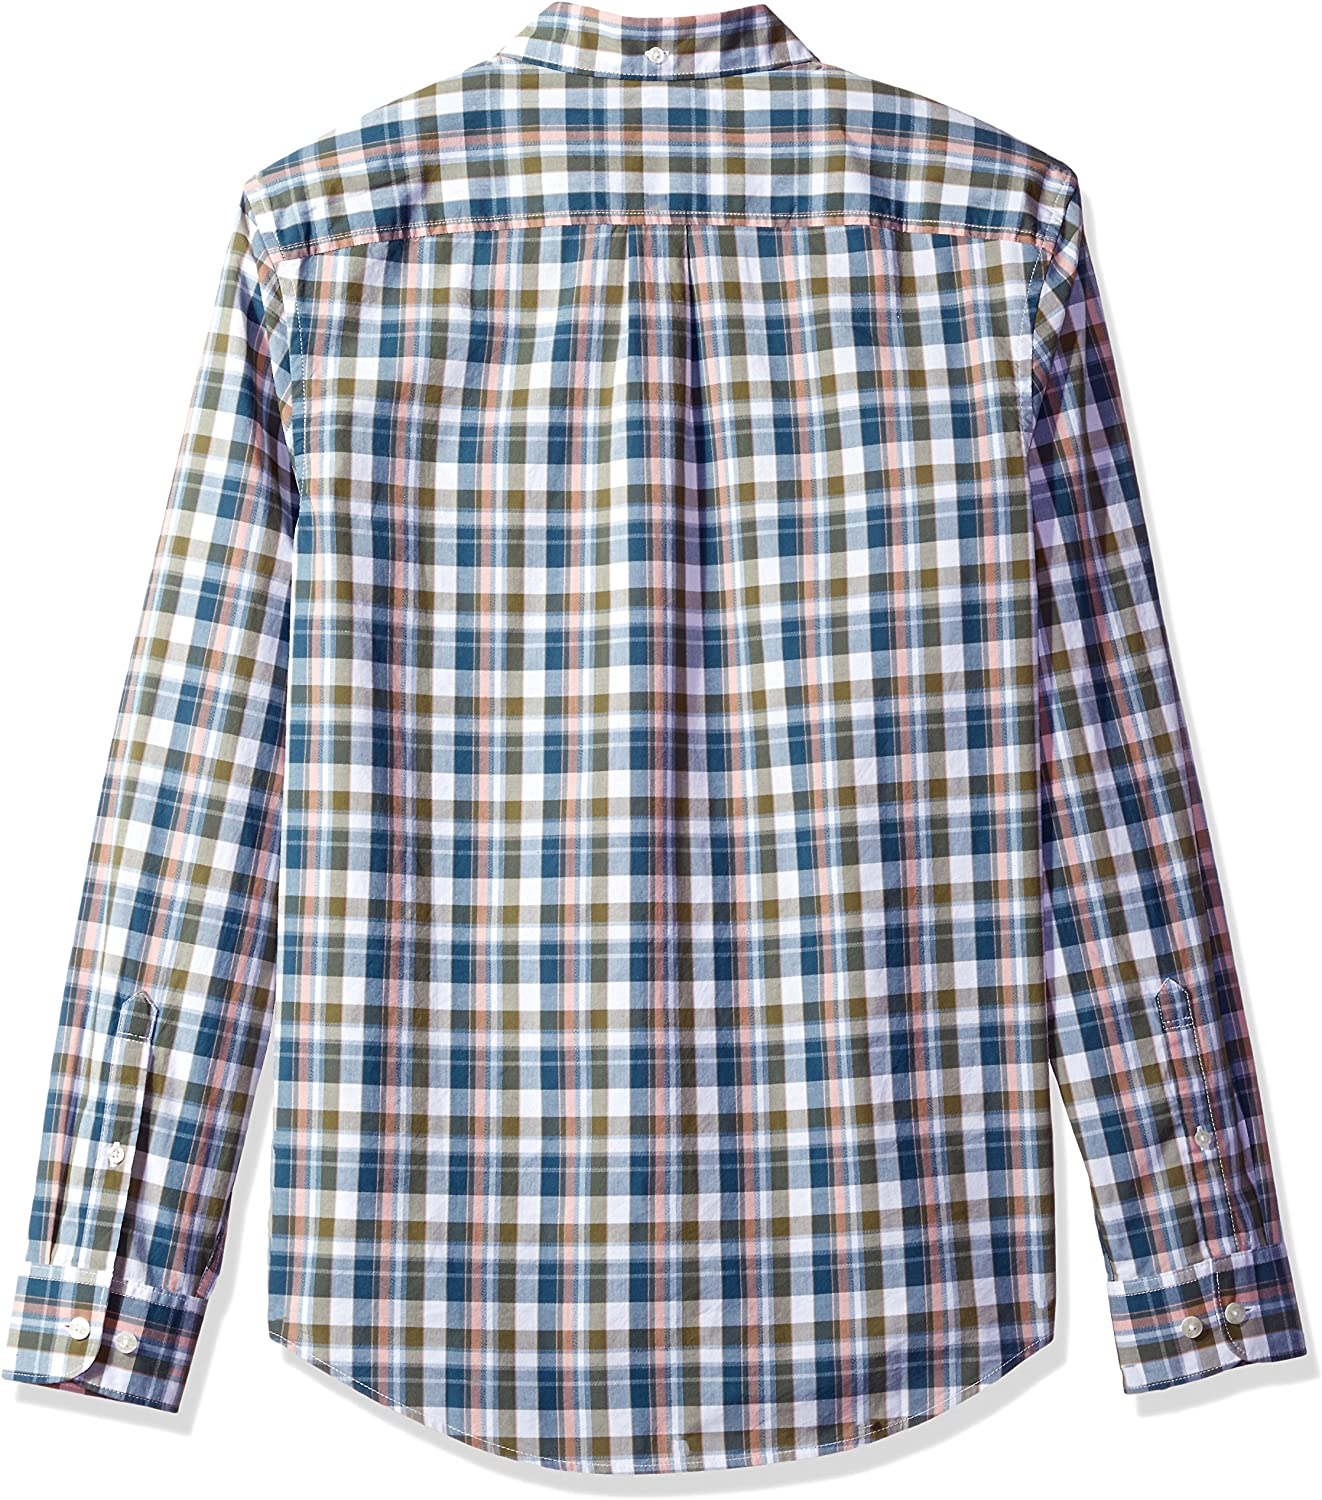 Original Penguin Mens Long Sleeve Plaid Button Down Shirt